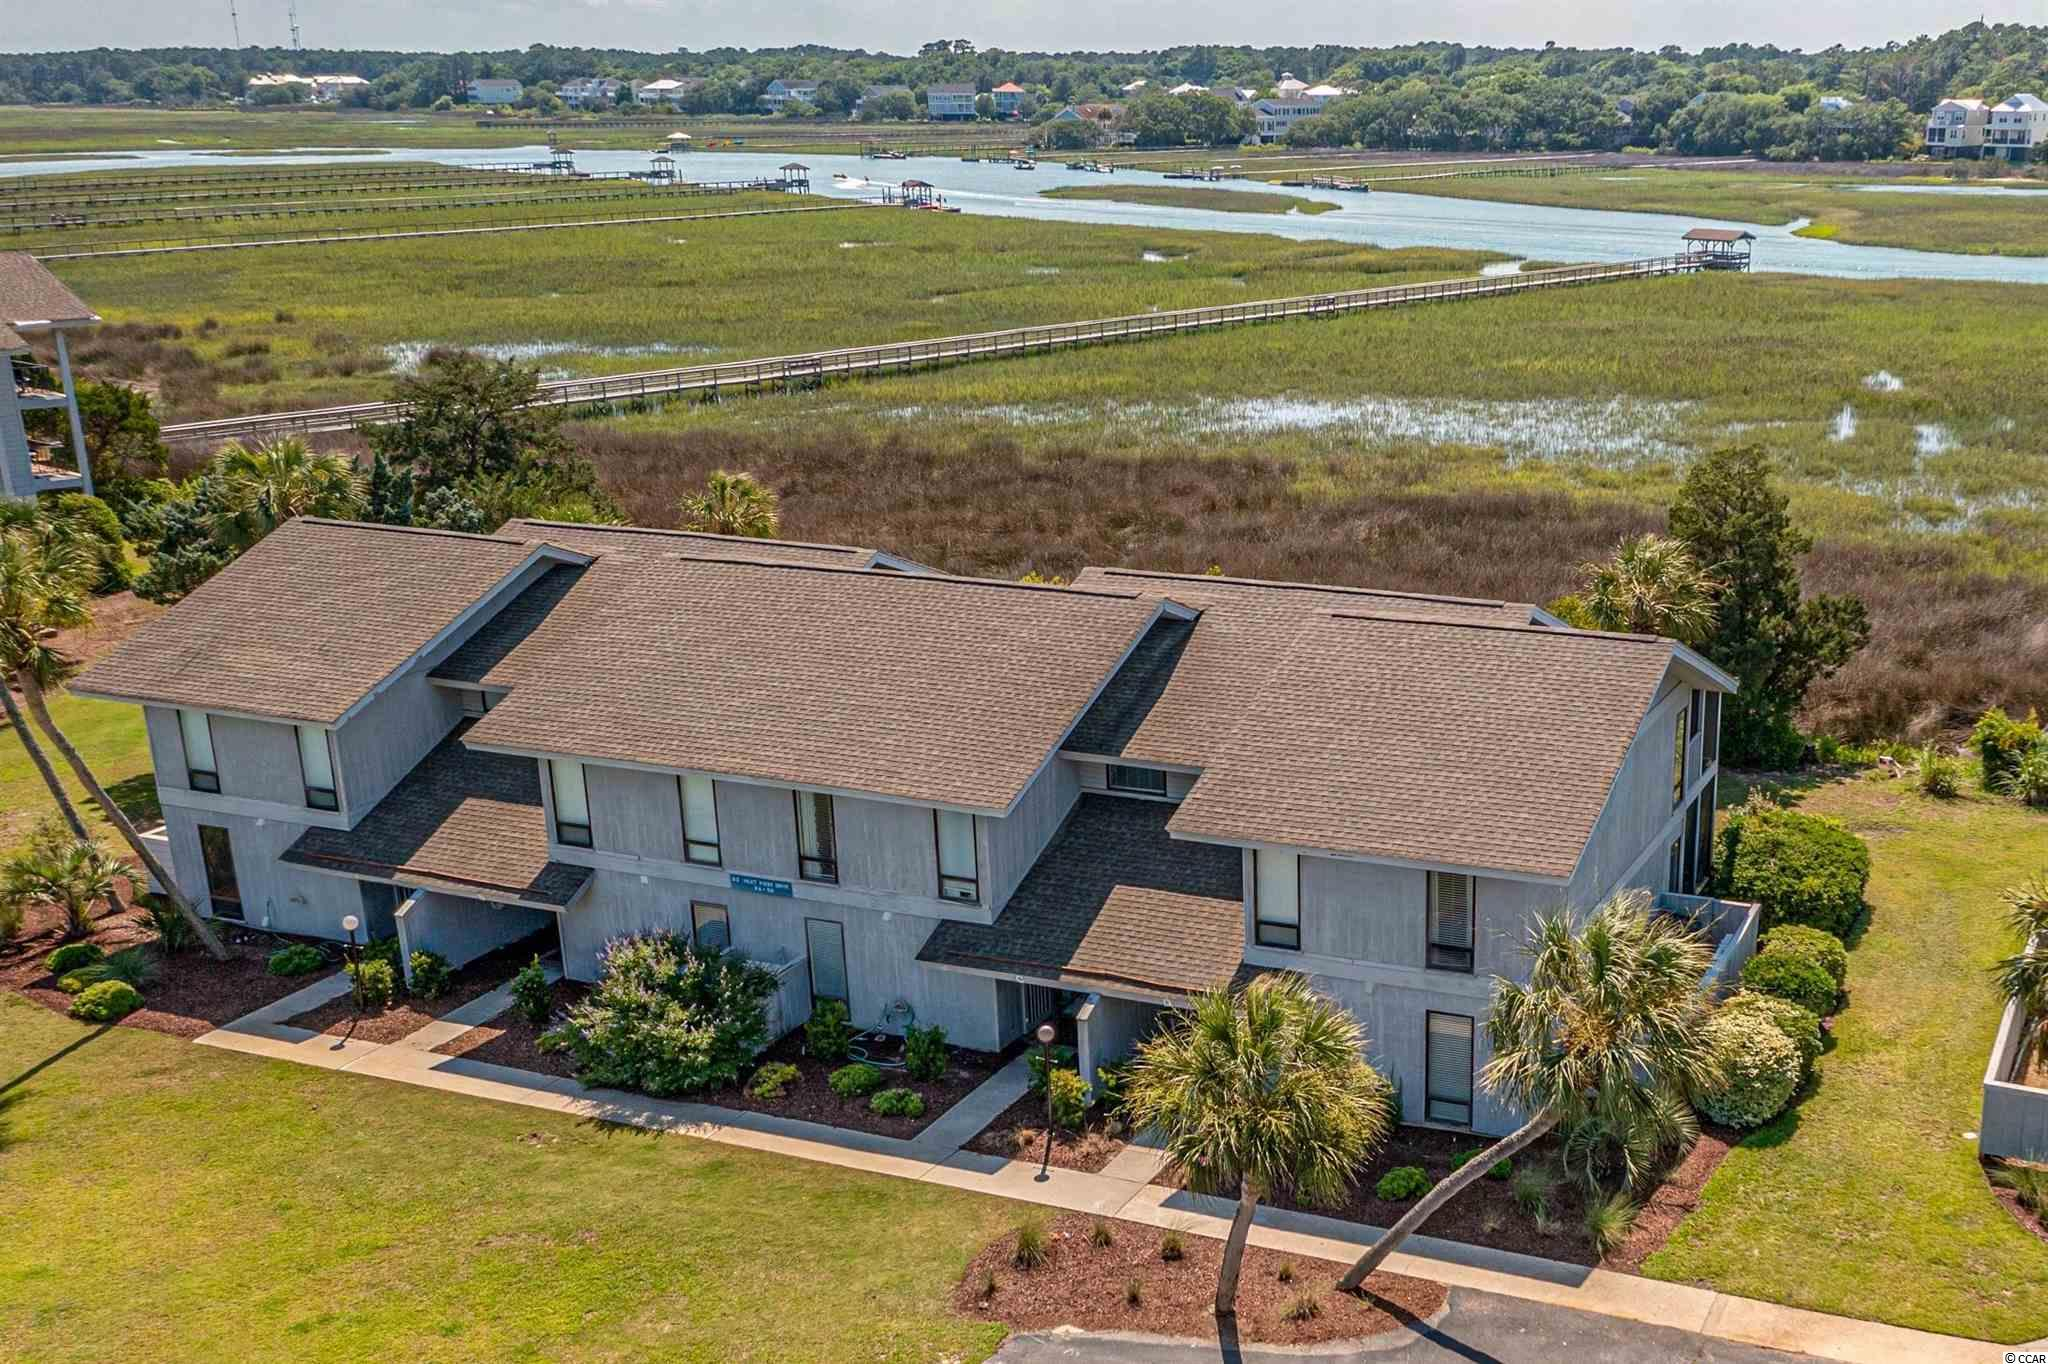 We have received multiple offers! Highest and best are due by 6/28/2021. Wow! If you have been dreaming about being in tropical paradise, this is the place for you! This lovely end-unit is located in the gated community of Inlet Point Villas at the tip of a private peninsula at Litchfield Beach in Pawleys Island! This unique ocean-front community has everything you could ever want! The white sandy beaches, beautiful turquoise water, and one-of-a-kind palm trees are waiting for you! This marsh-front villa has breathtaking views of the Inlet, and it's completely move-in-ready! Most of the unit has been remodeled, and it is being sold fully furnished, so it's completely turnkey! As you enter through the foyer, you will notice a large kitchen with a breakfast bar. This is a great open floor plan, which is perfect for entertaining! All of the appliances have been recently replaced with stainless steel. The dining room area features a tray ceiling along with plenty of space for everyone. There is a powder room downstairs for guests as well. The master bedroom is quite spacious, and it even has its own screened-in balcony where you can enjoy a good book. The master also has an en-suite bath. The laundry room is downstairs, and the washer and dryer will convey. They were both replaced recently. The other two bedrooms are very big, and one of them has a balcony where you can soak up the sunshine and gaze at the magnificent view of the Marsh! This remarkable villa has been well-maintained by the original owners. This unit has been in the family for generations. HVAC was replaced in 2014, and the hot water was installed this year. There is a huge screened-in porch right off the dining room where you can feel an amazing ocean breeze! This is a great place to eat lunch or sip on your favorite beverage. There's a patio for grilling and a storage room for all your beach necessities. So, come sit back, relax, and let the hoa maintain everything for you! Fees include: cable, interne